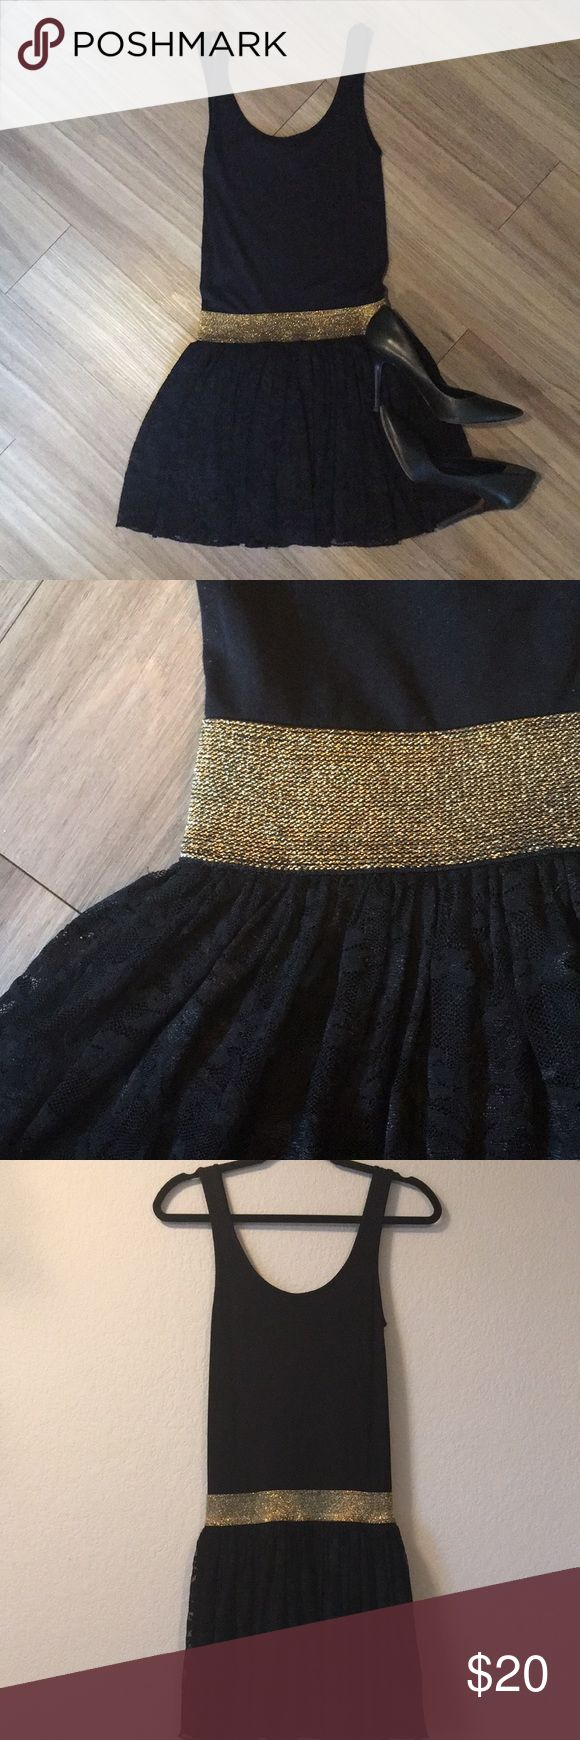 Bebe Drop Waist Dress Black dress, fitted jersey tank style top with gold stretch belt and full layered lace skirt. Cute and flirty, great for a night out dancing! bebe Dresses Mini